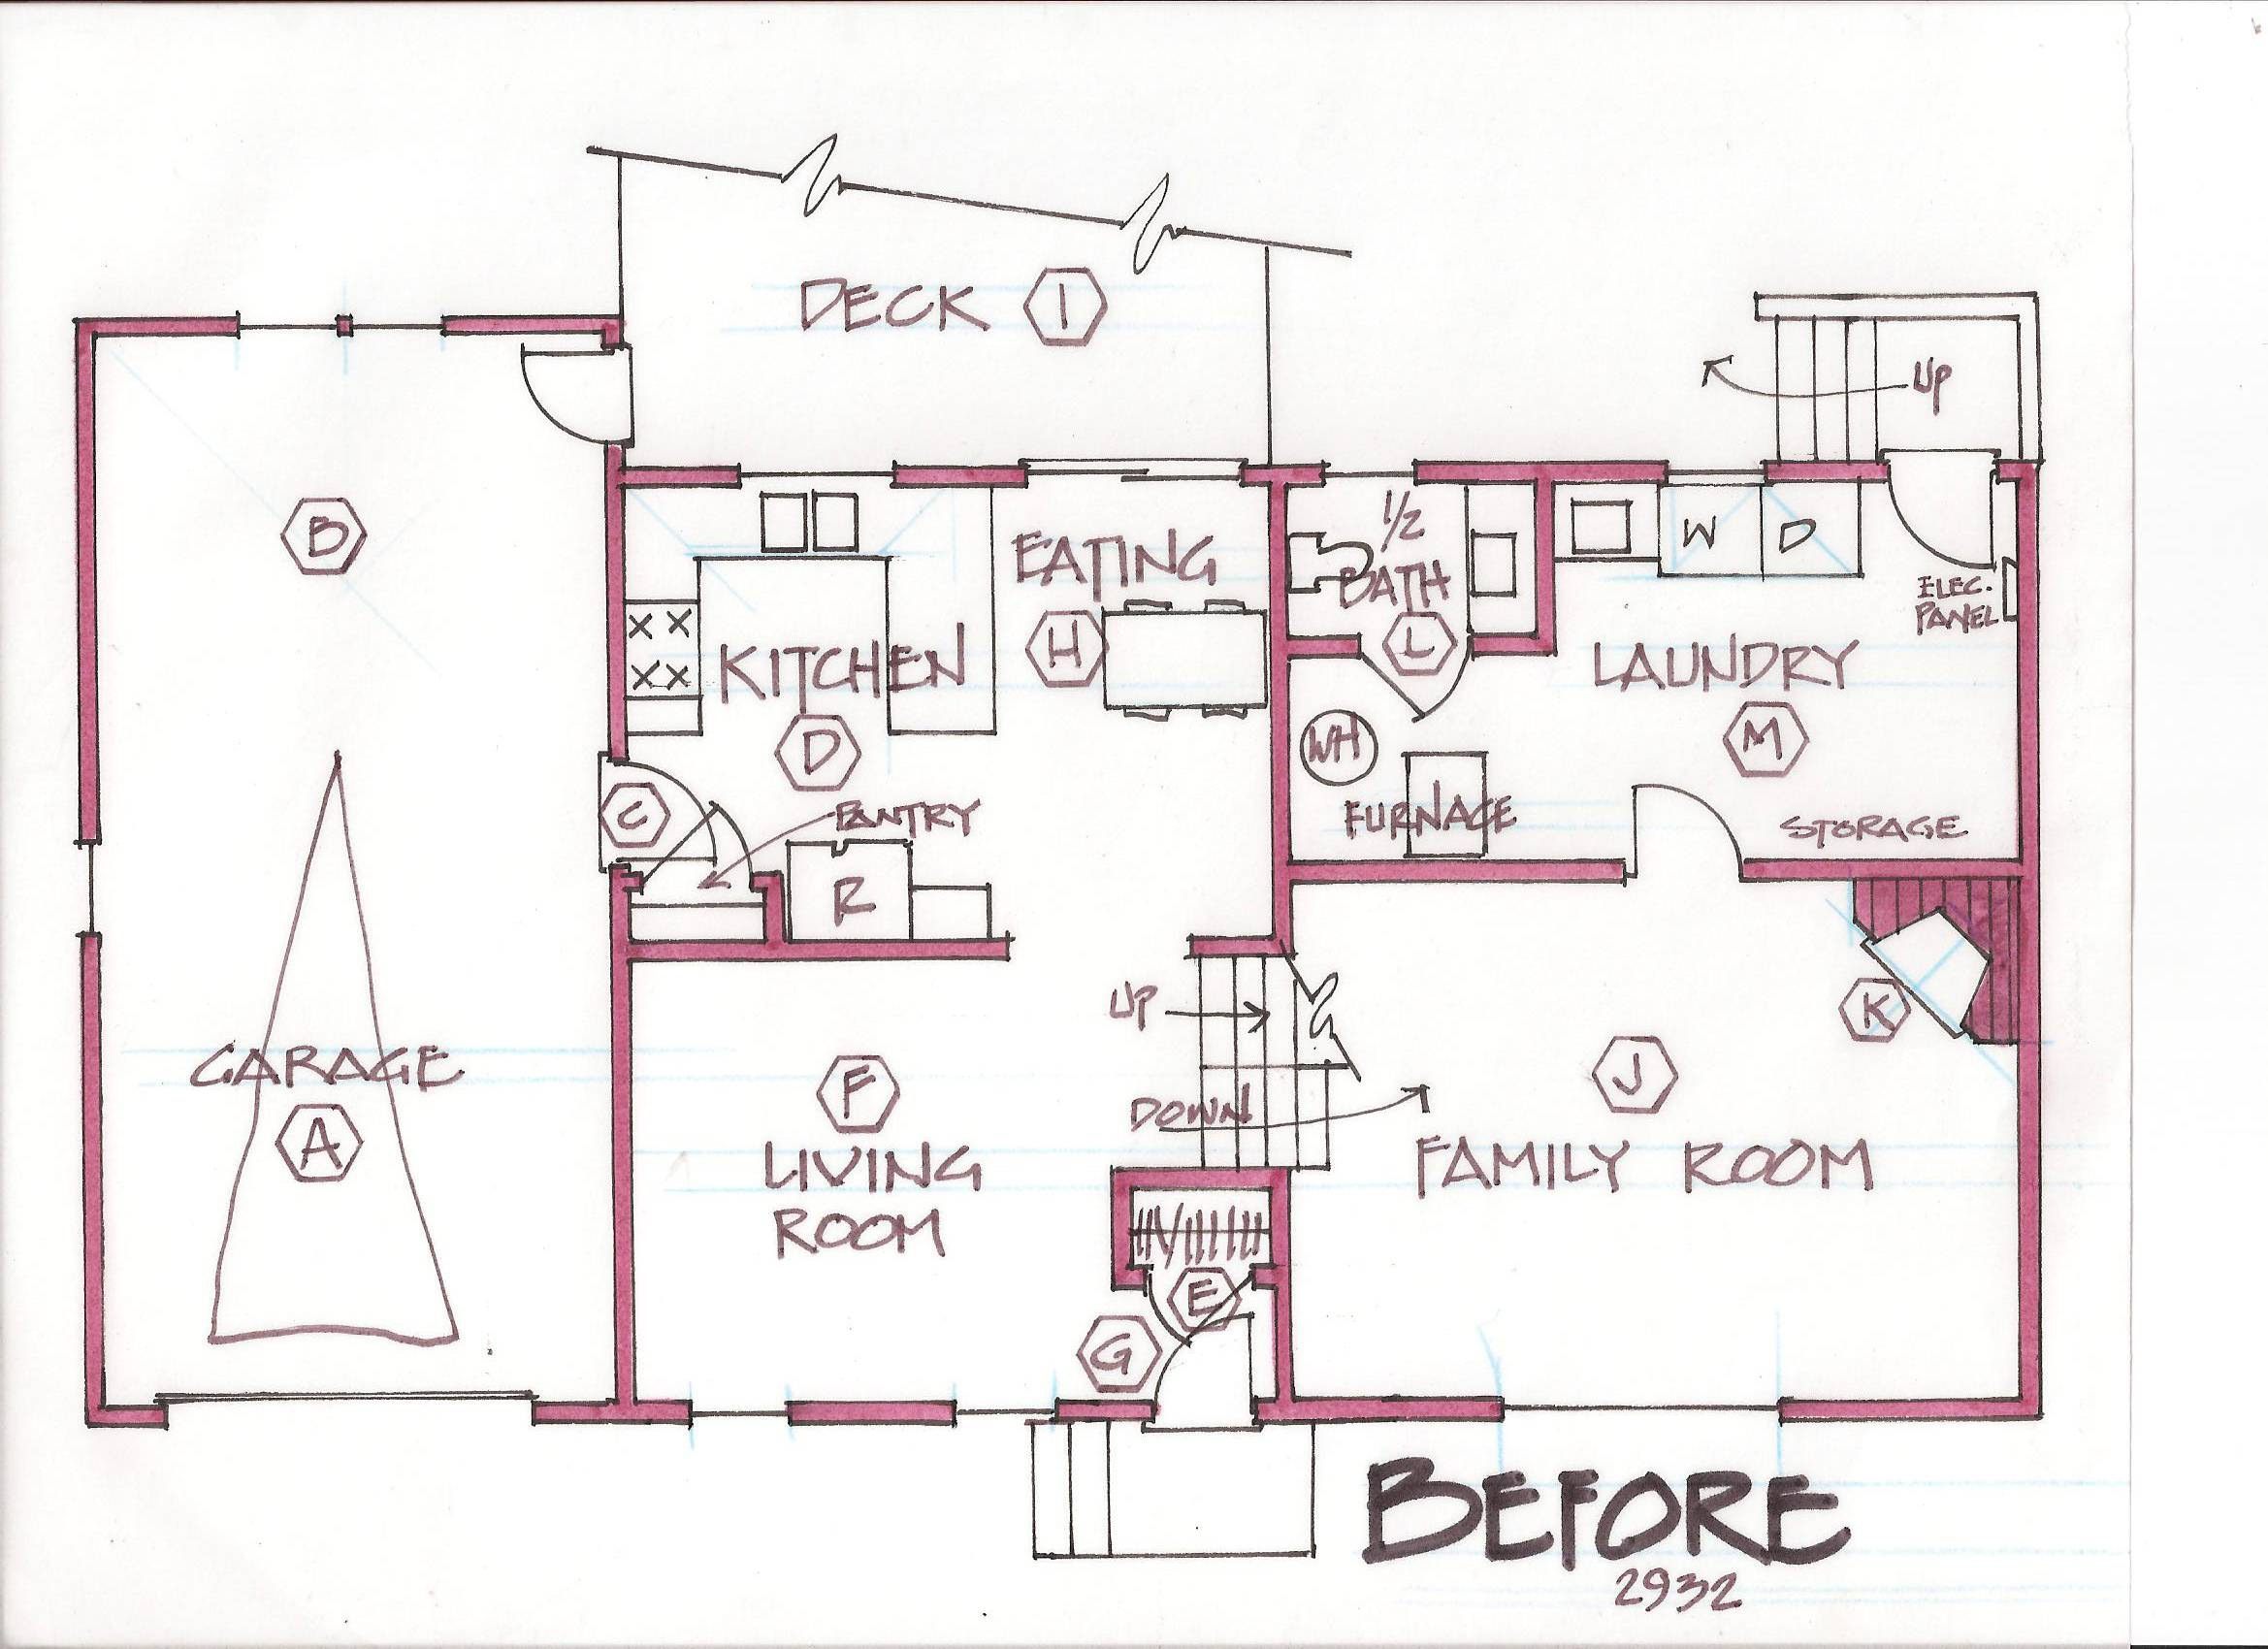 home additions plans home remodel story proposed design of the home addition designs - Home Remodel Design